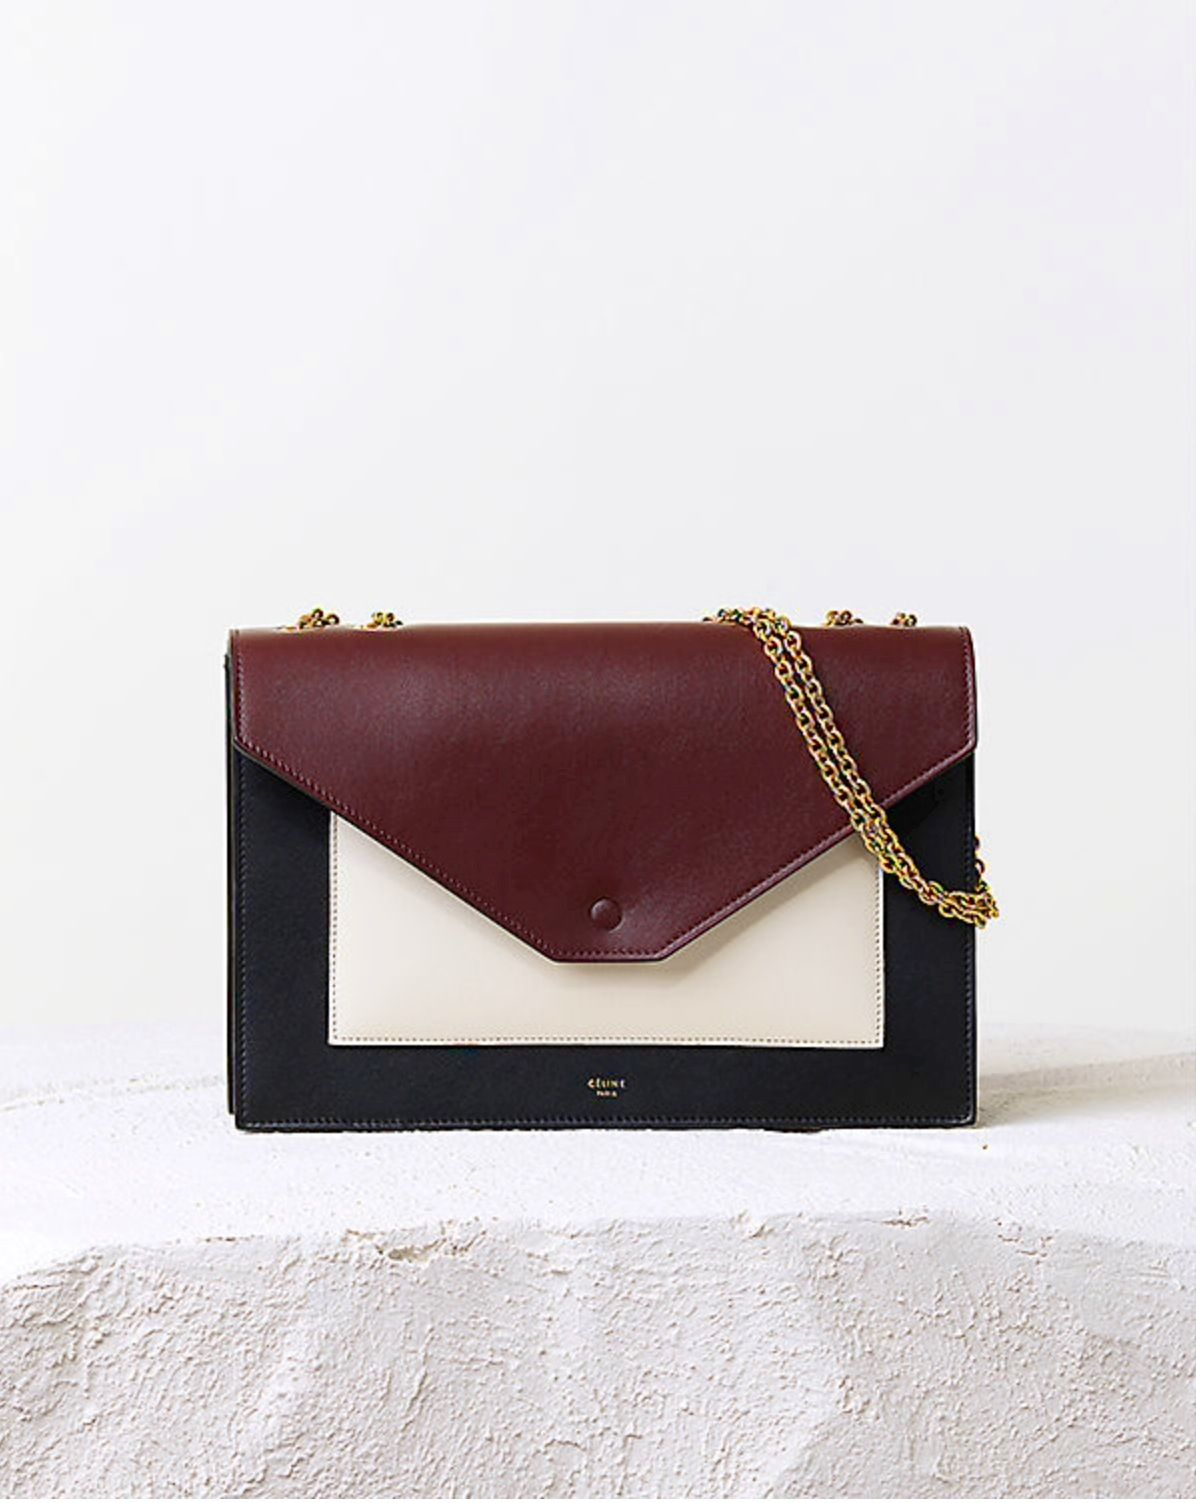 Céline Pocket Envelope bag - Pre-Fall 14  59aad0c39b1ac